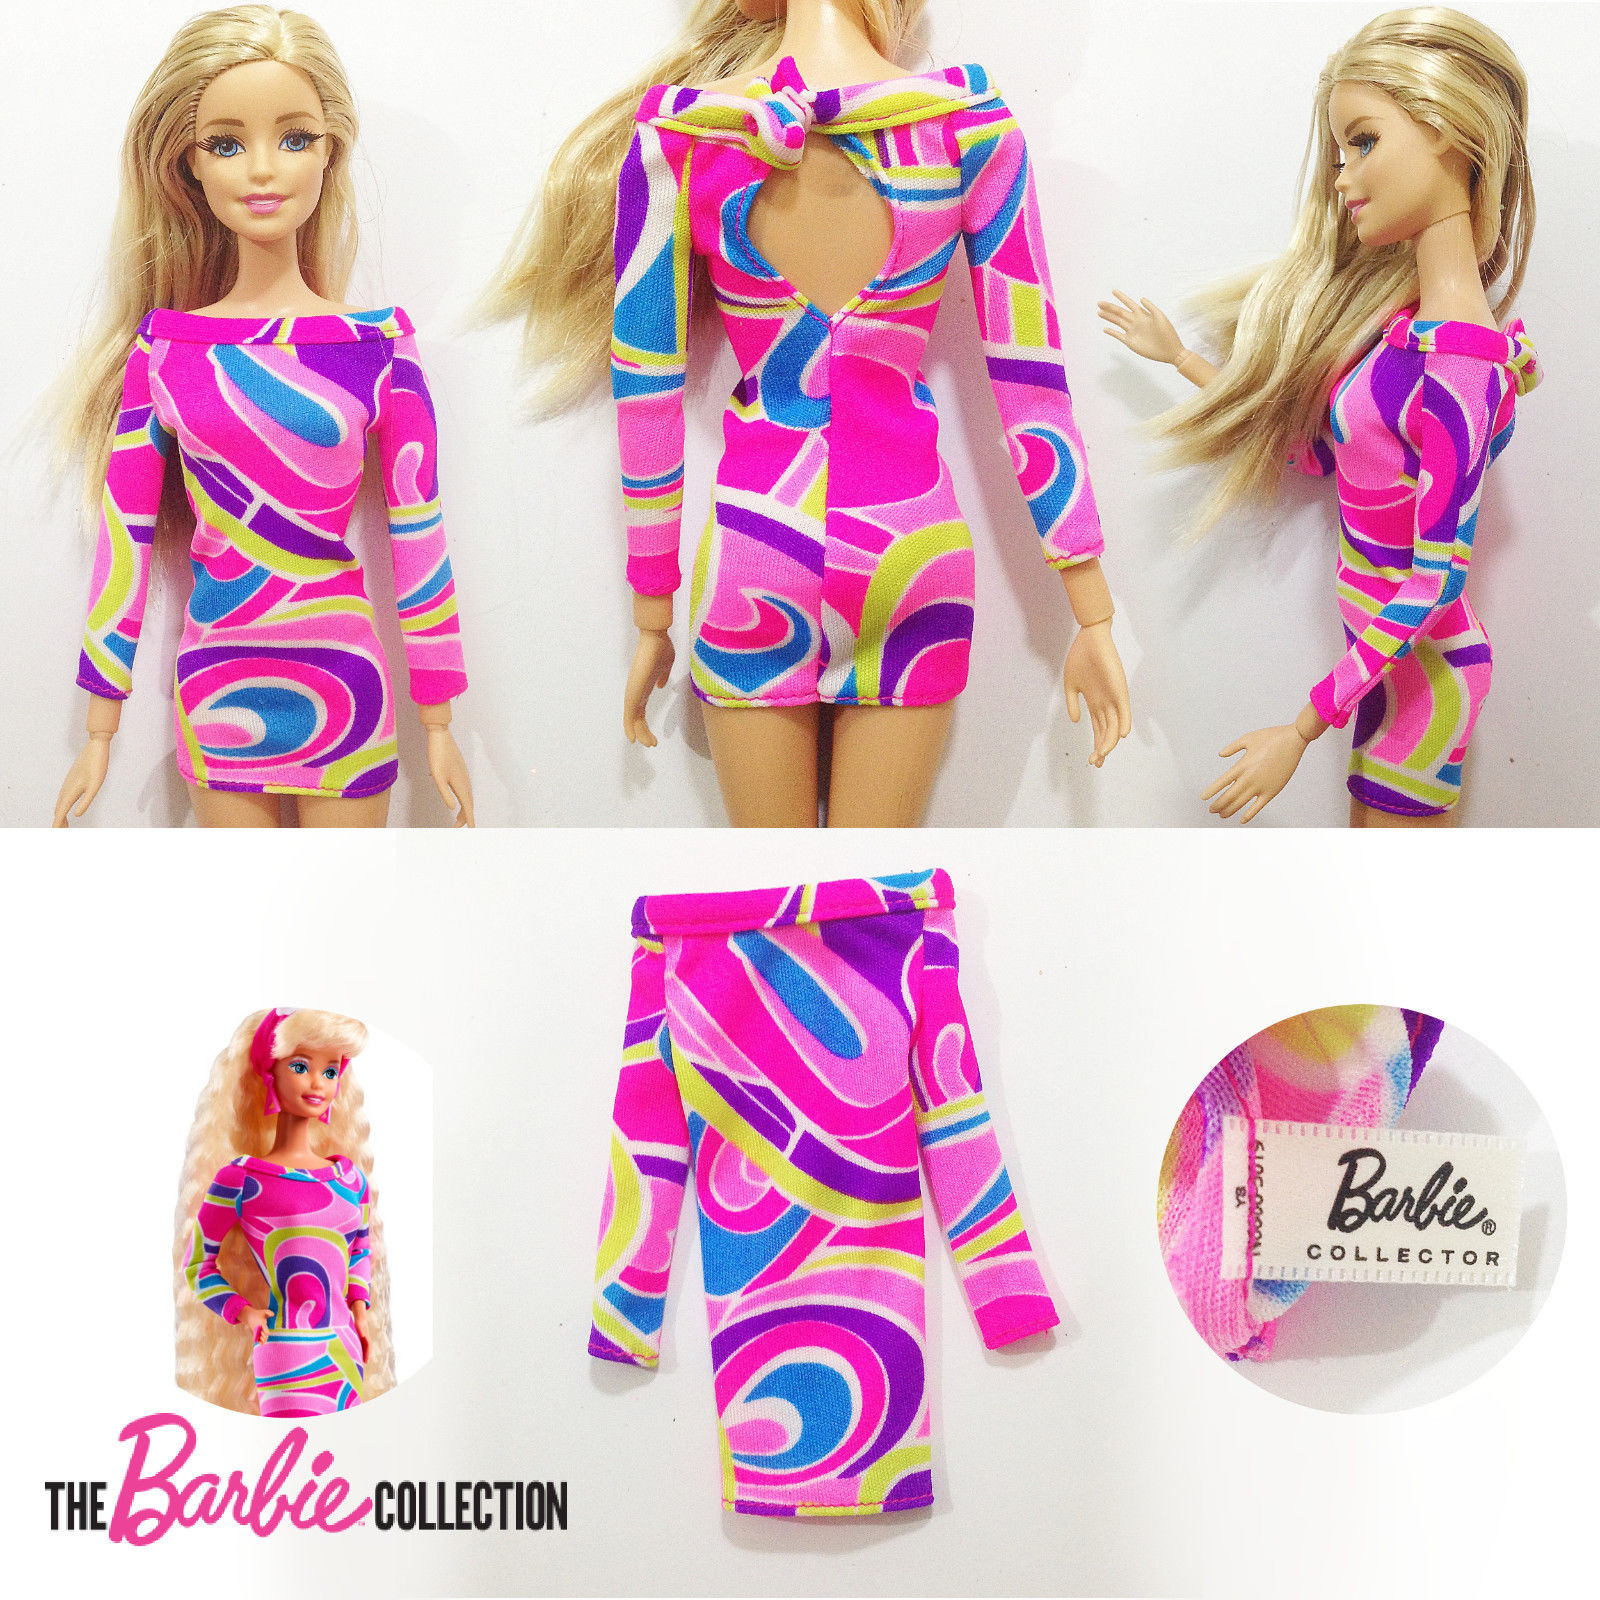 New Dress Of Barbie Collector Totally Hair 25th Anniversary Barbie Doll  sold by BarbieRobertsStuff